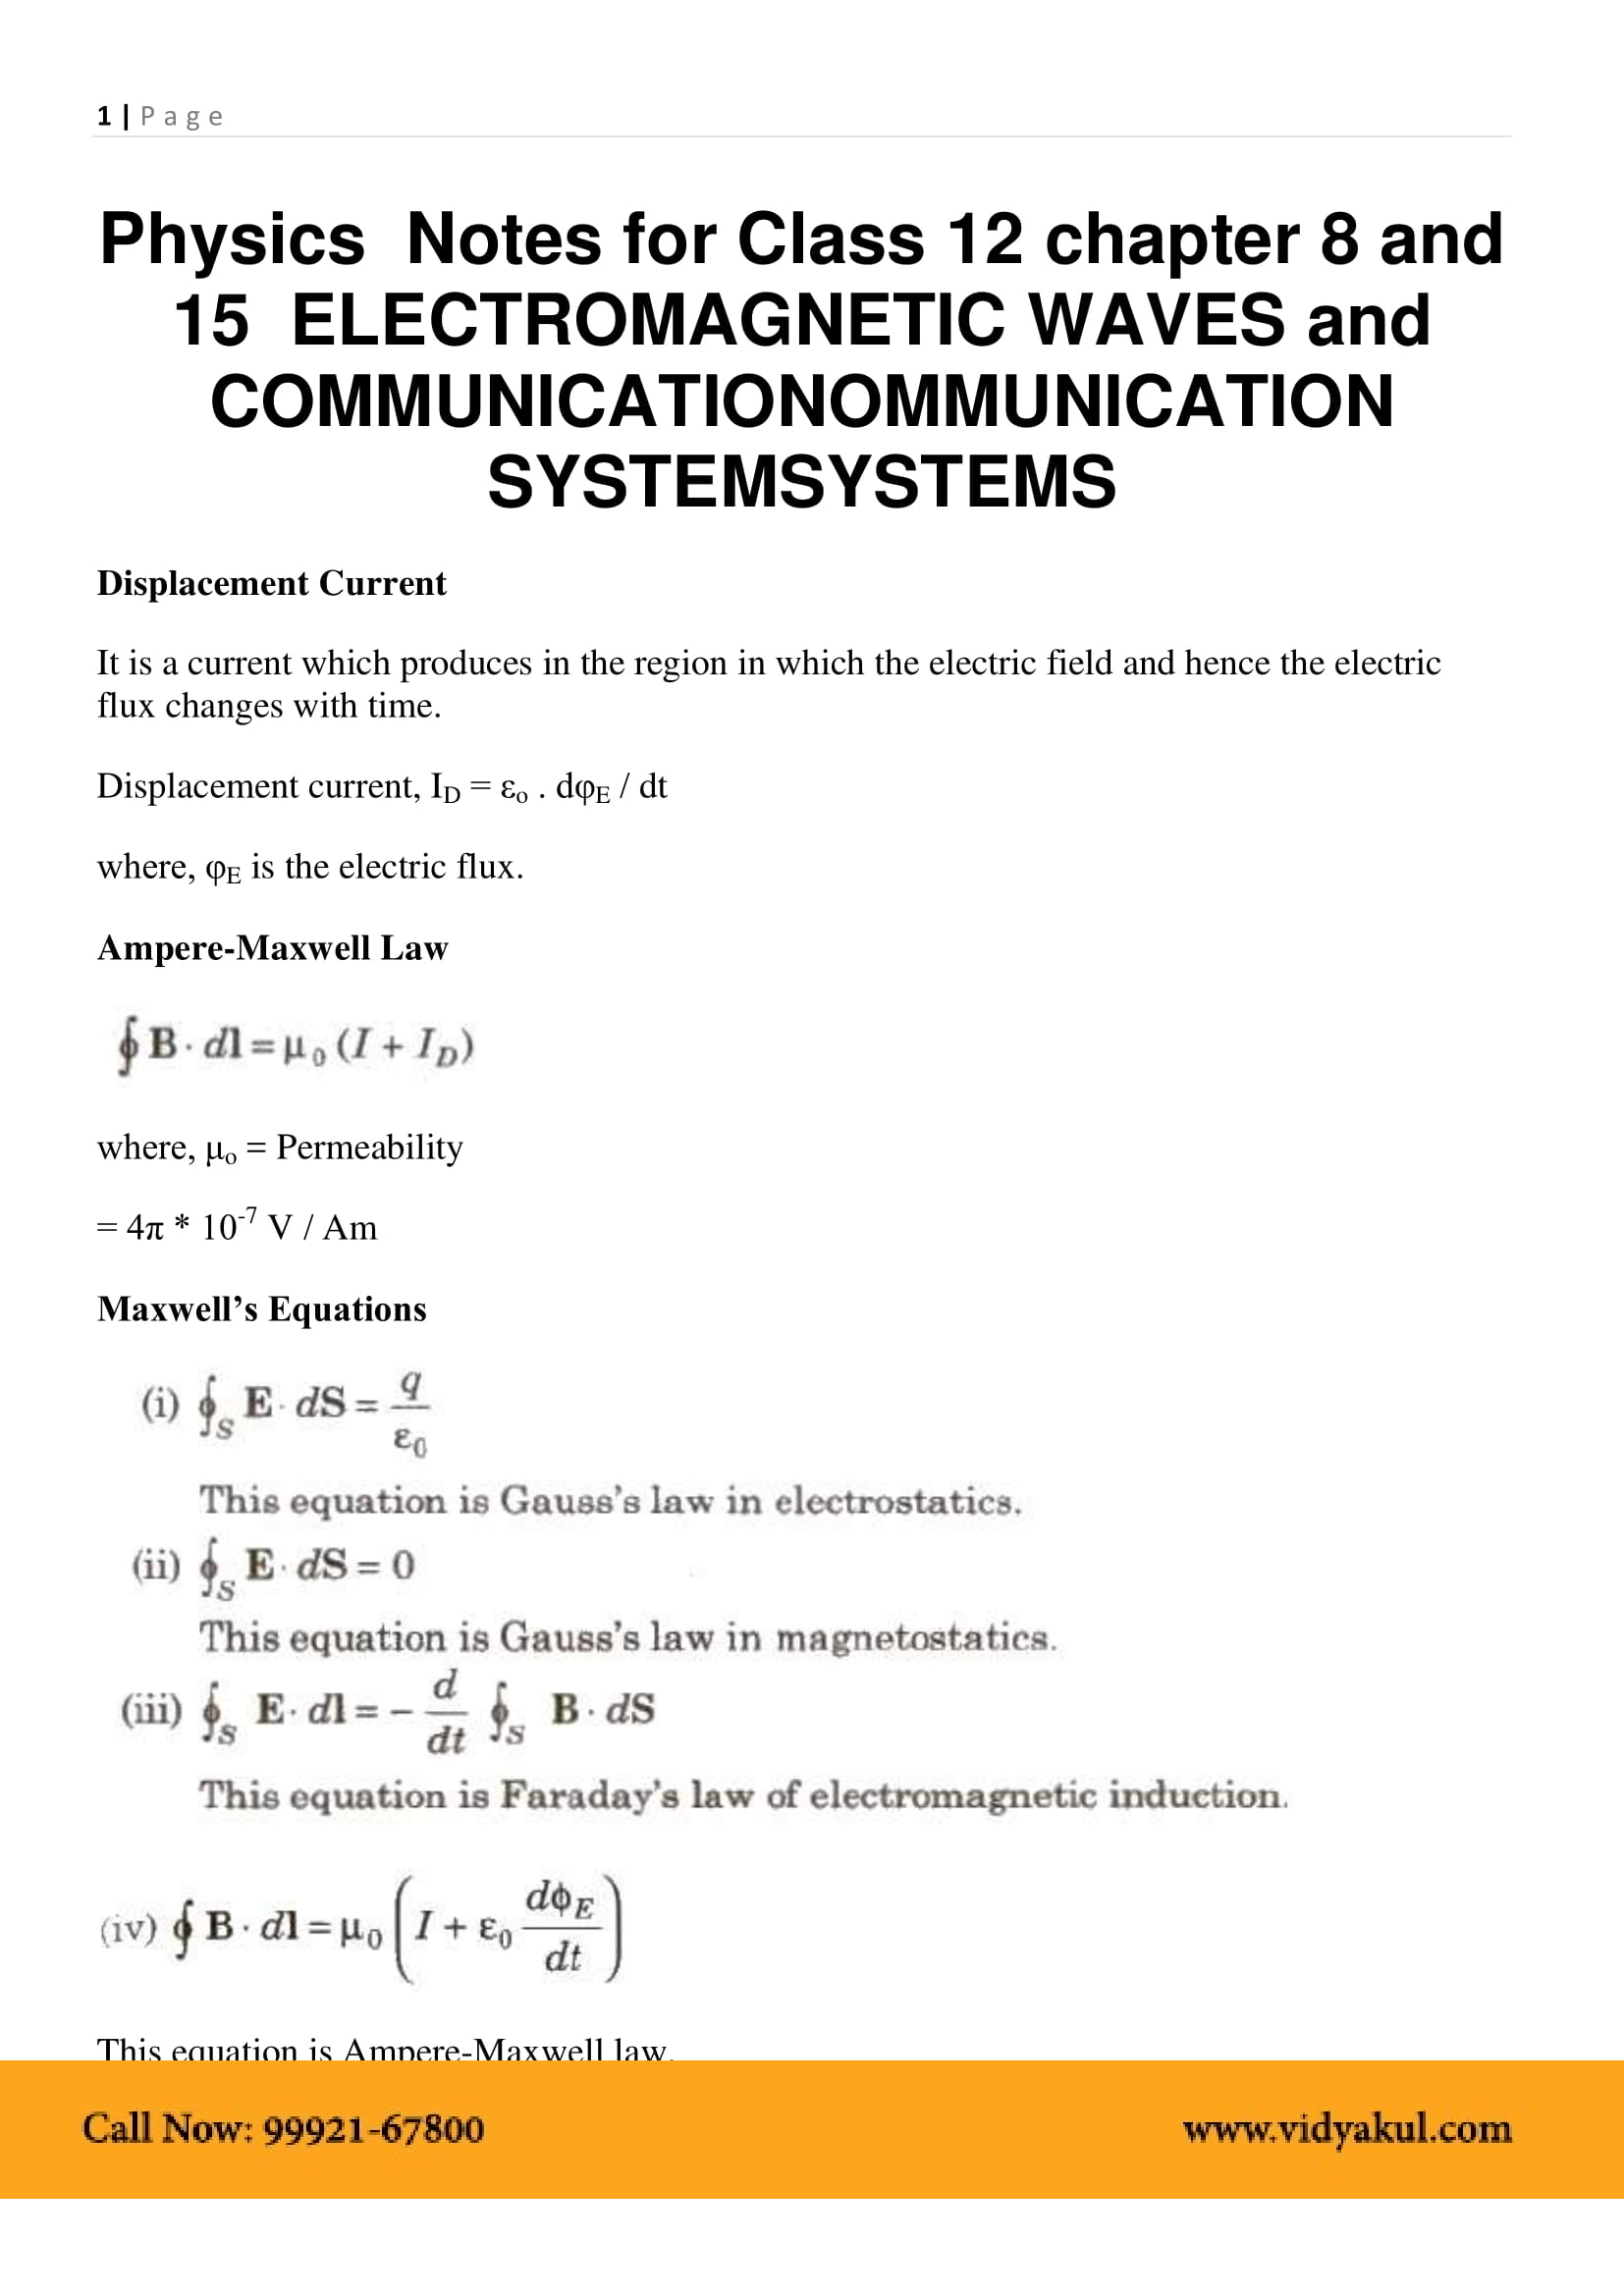 Class 12 physics chapter 8 electromagnetic waves notes vidyakul download this solution for free download this pdf publicscrutiny Gallery